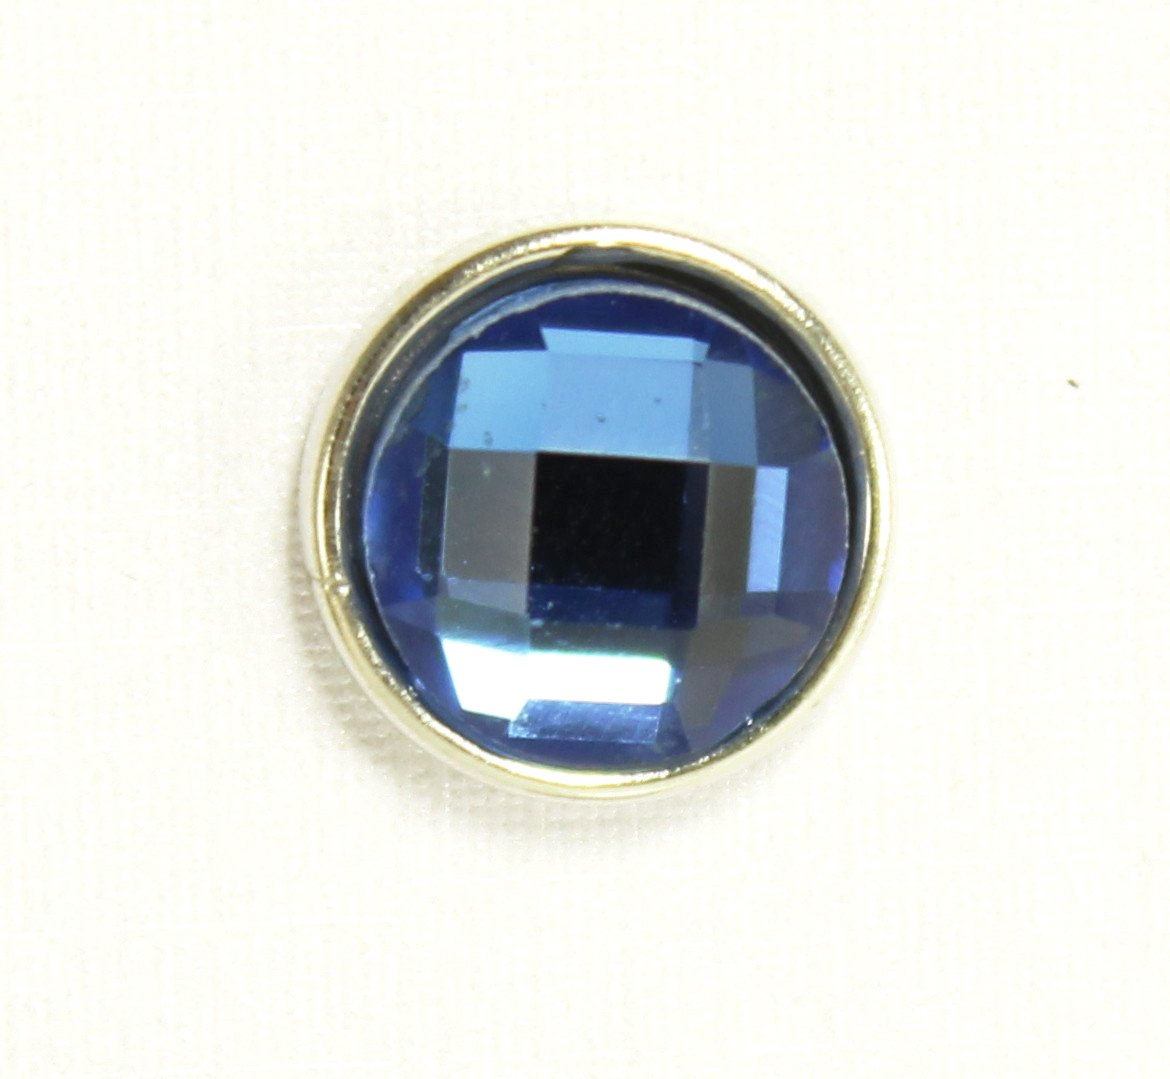 Sparkle Snap-Periwinkle Blue (fits Sparkle Snap Ring and Circle Pendant only)